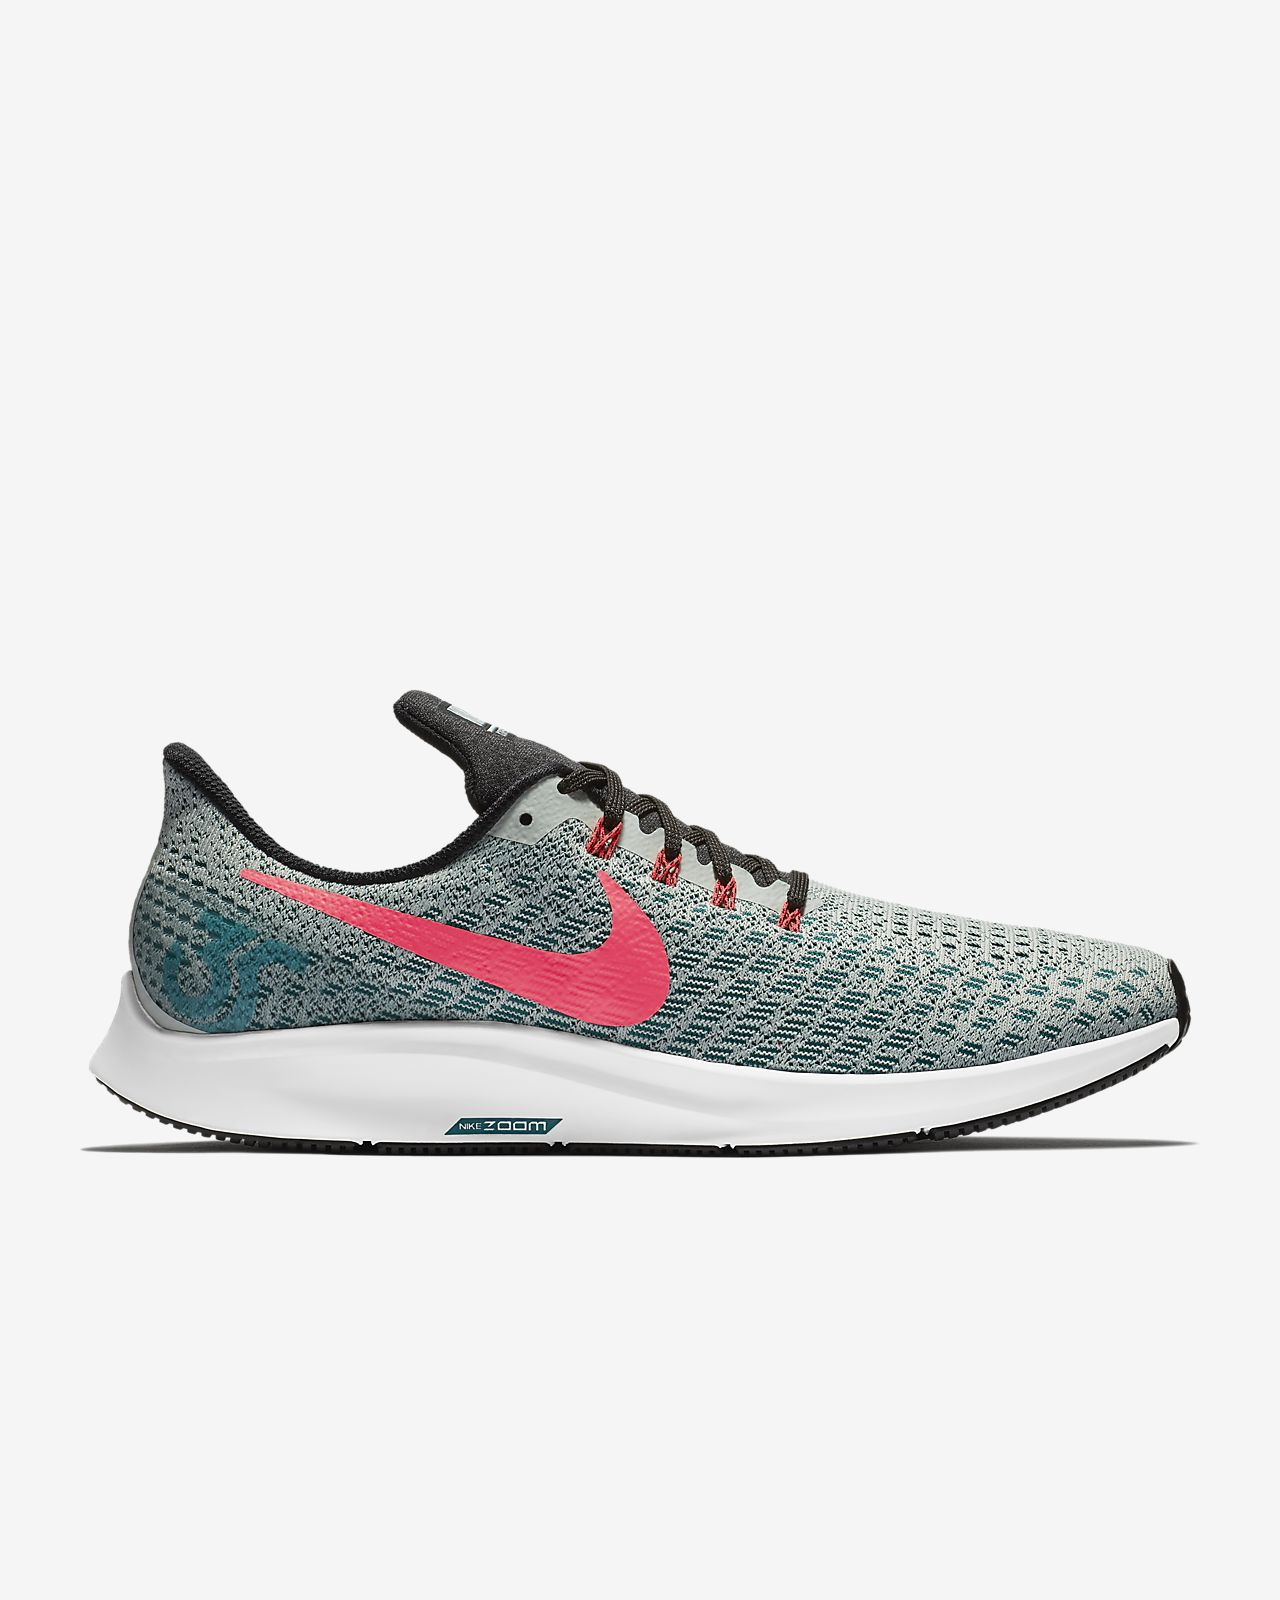 0b1246c69e08 Nike Air Zoom Pegasus 35 Men s Running Shoe. Nike.com